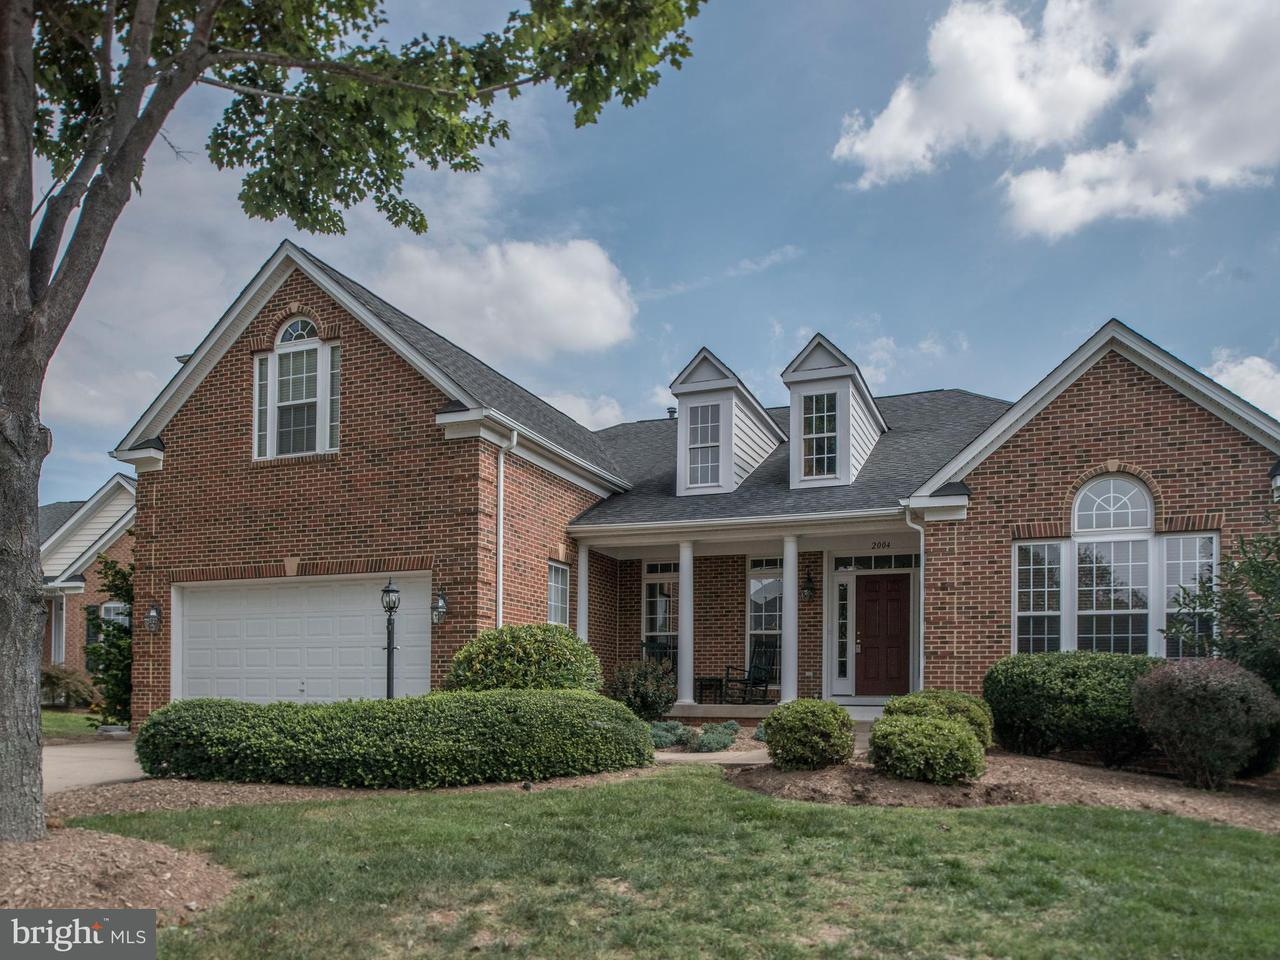 Single Family Home for Sale at 2004 Golf Drive 2004 Golf Drive Culpeper, Virginia 22701 United States